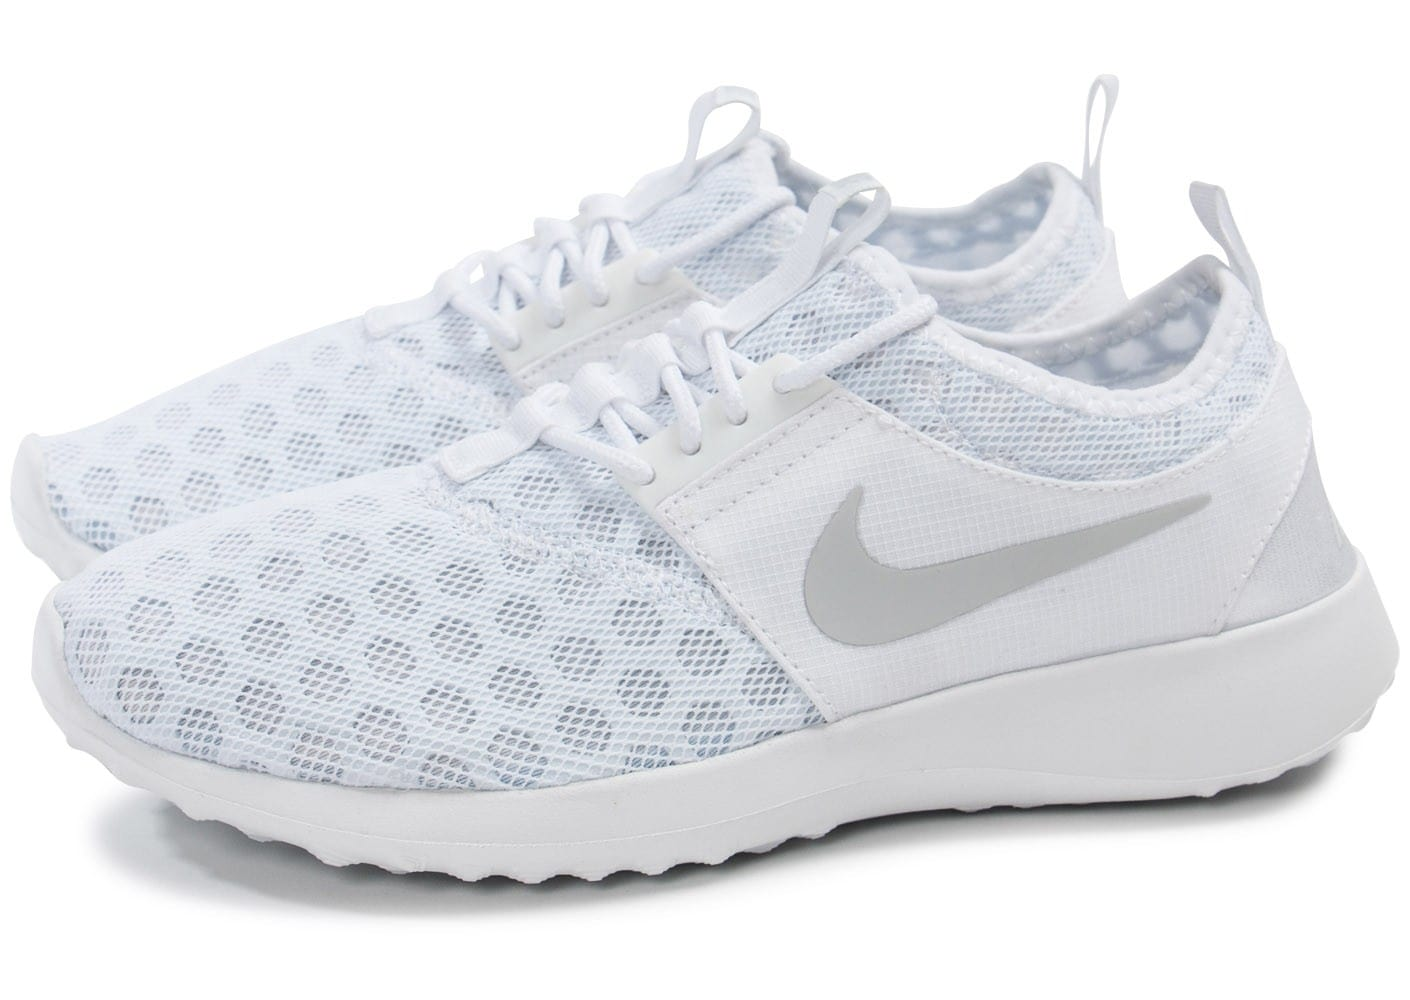 wholesale dealer dc7e3 c1588 Femme Juvenate Nike Baskets Chausport Chaussures Blanche OmyvN08nw